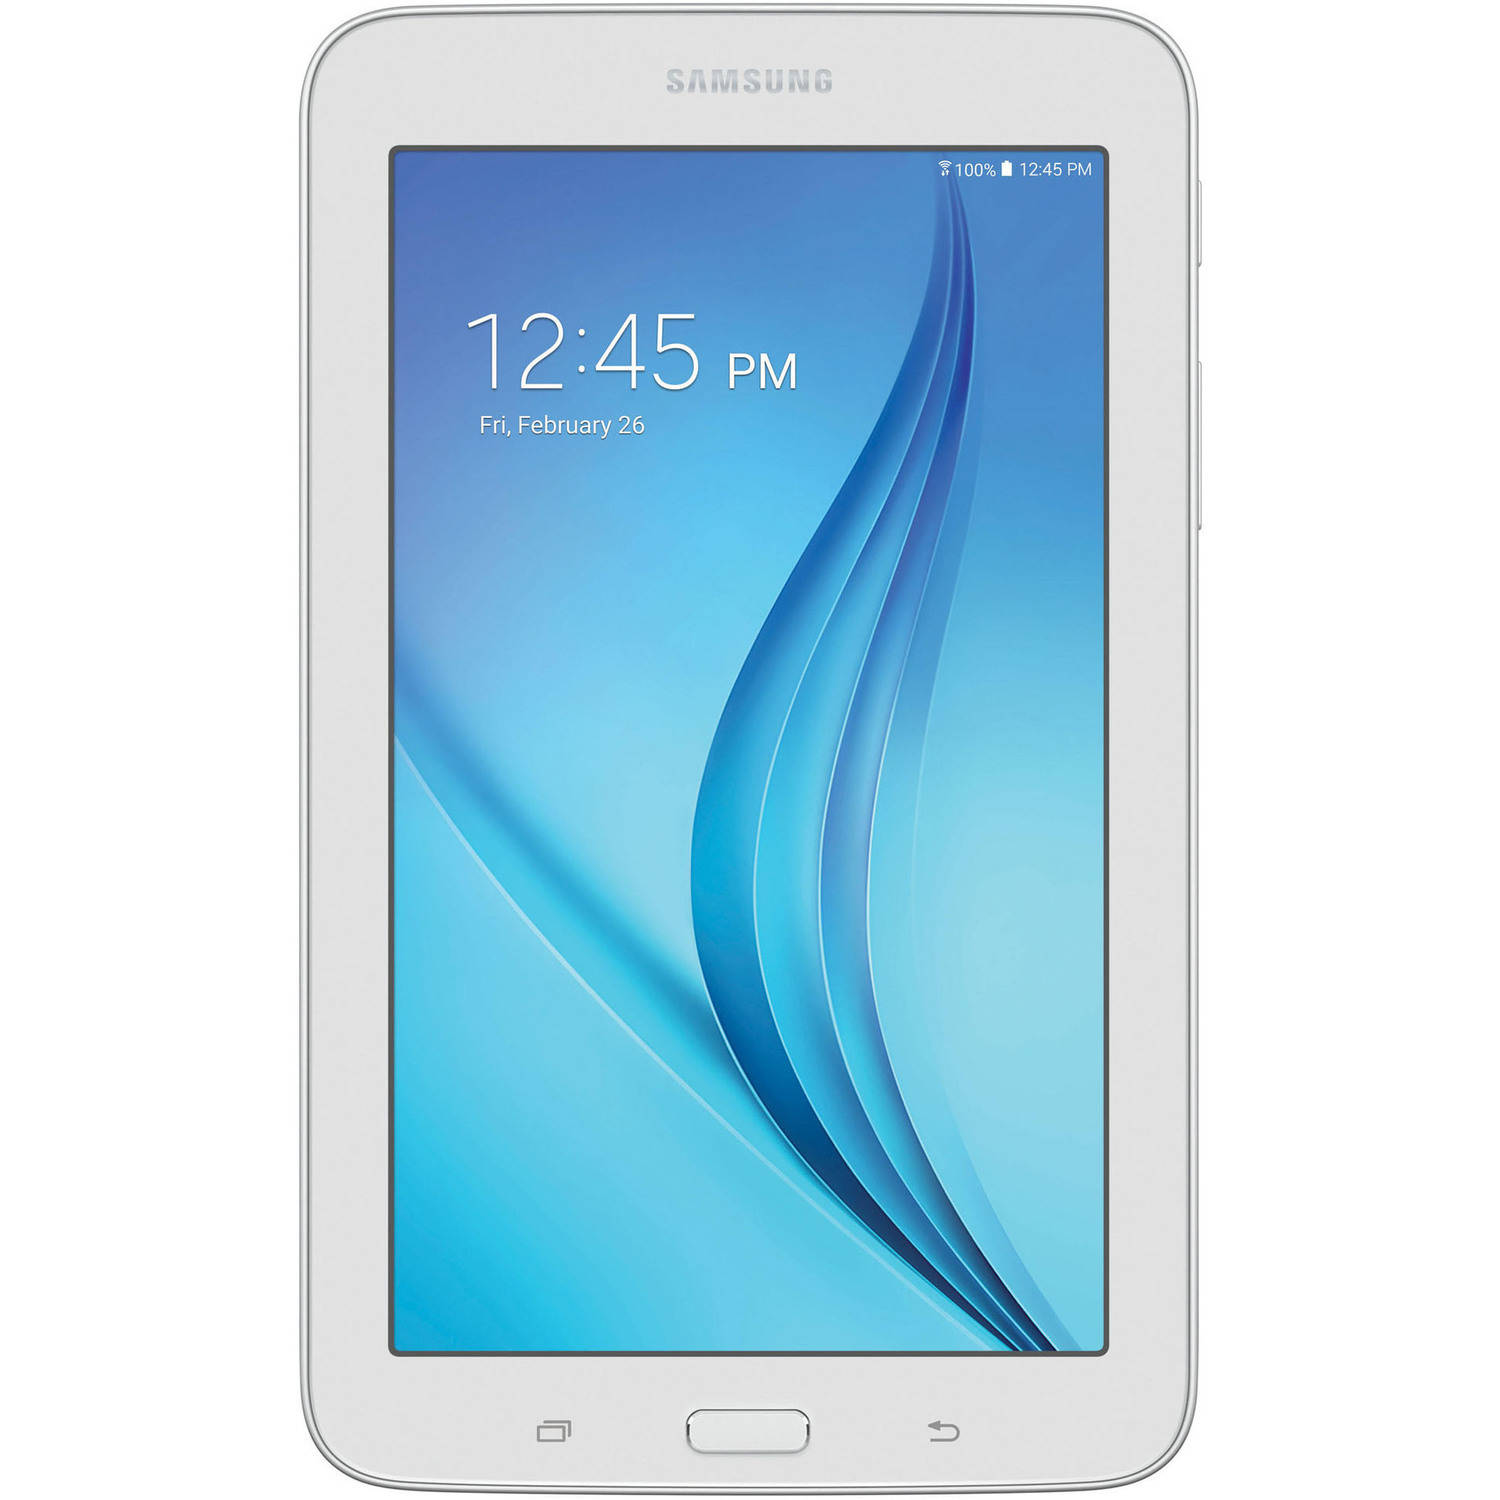 "Refurbished Samsung Galaxy Tab E Lite with WiFi 7"" Touchscreen Tablet PC Featuring Android 4.4 (KitKat) Operating System"